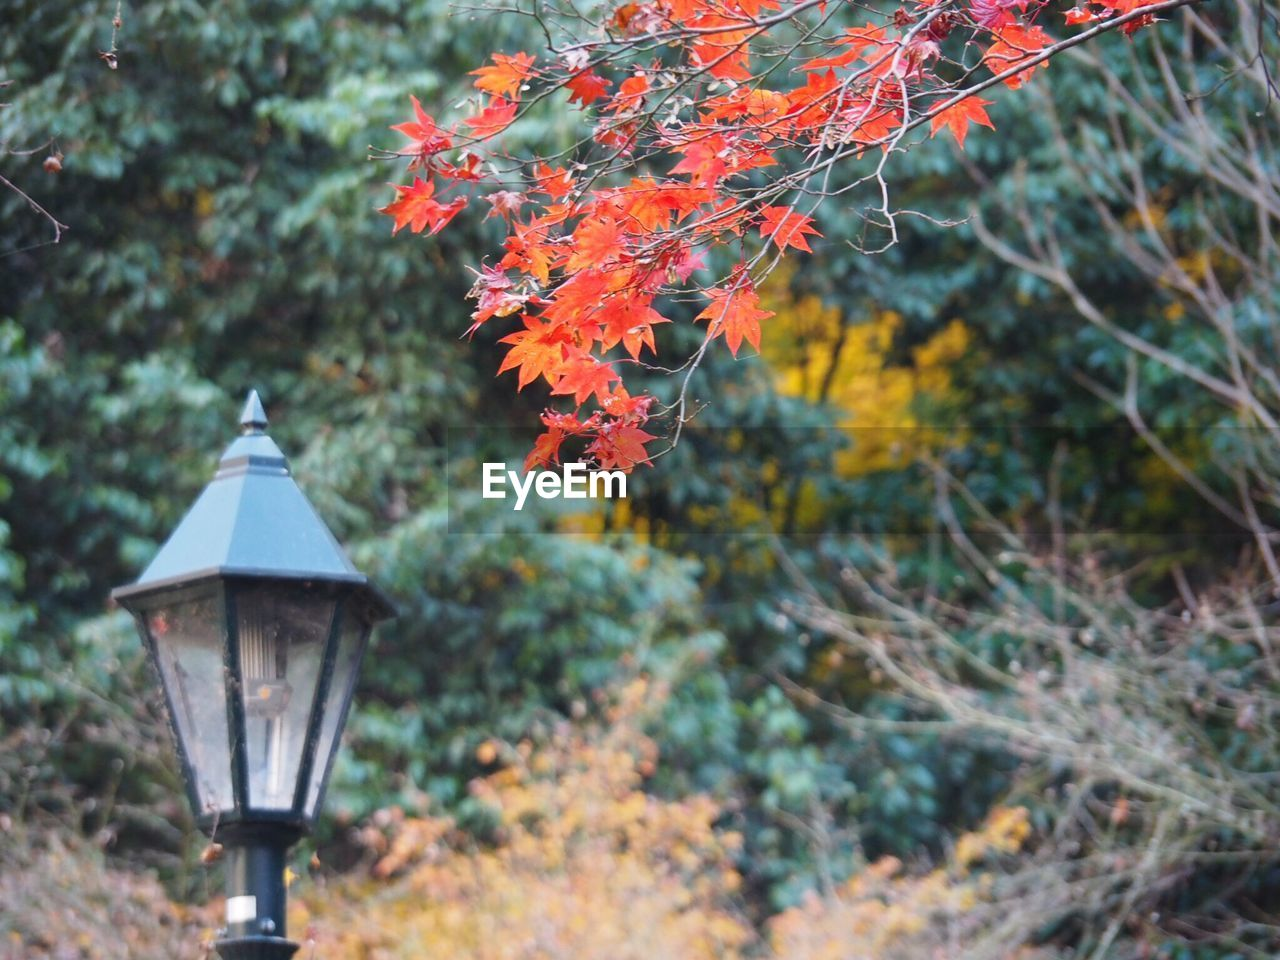 plant, change, tree, nature, autumn, focus on foreground, no people, growth, day, lighting equipment, beauty in nature, outdoors, leaf, plant part, orange color, branch, street light, forest, tranquility, land, electric lamp